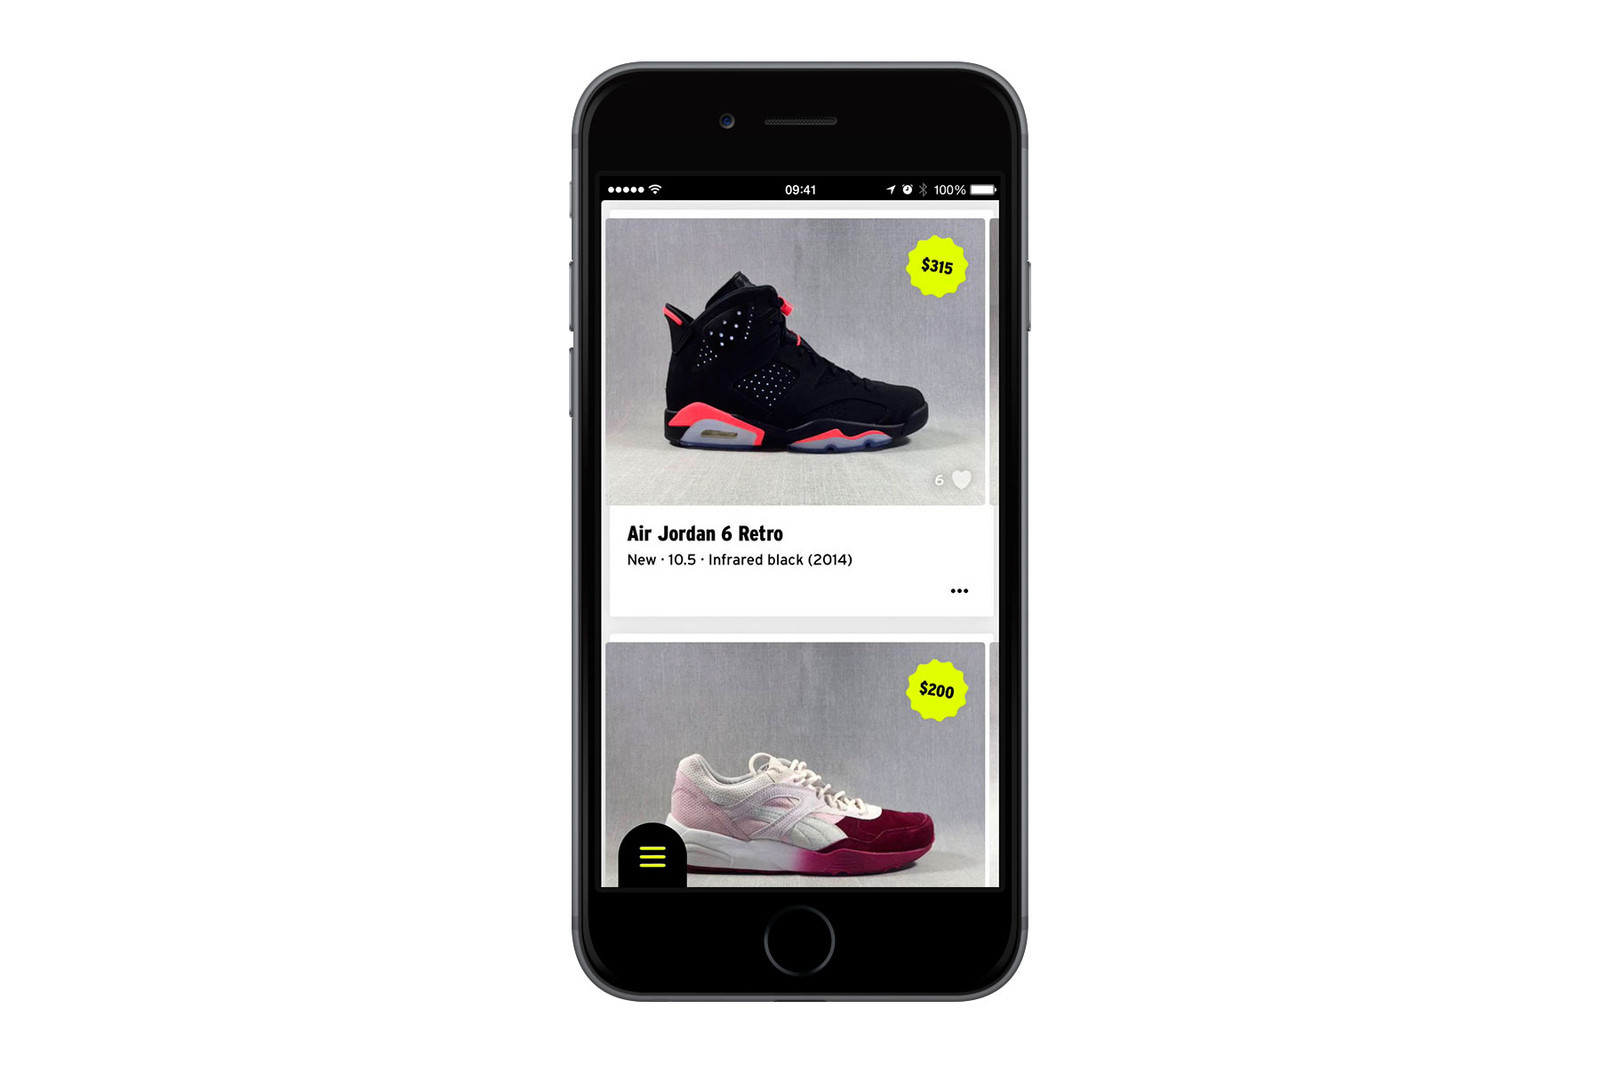 b5b20b8340b5c5 The ever-popular GOAT app deserves an honourable mention for dominating the  market as the most trusted sneaker marketplace